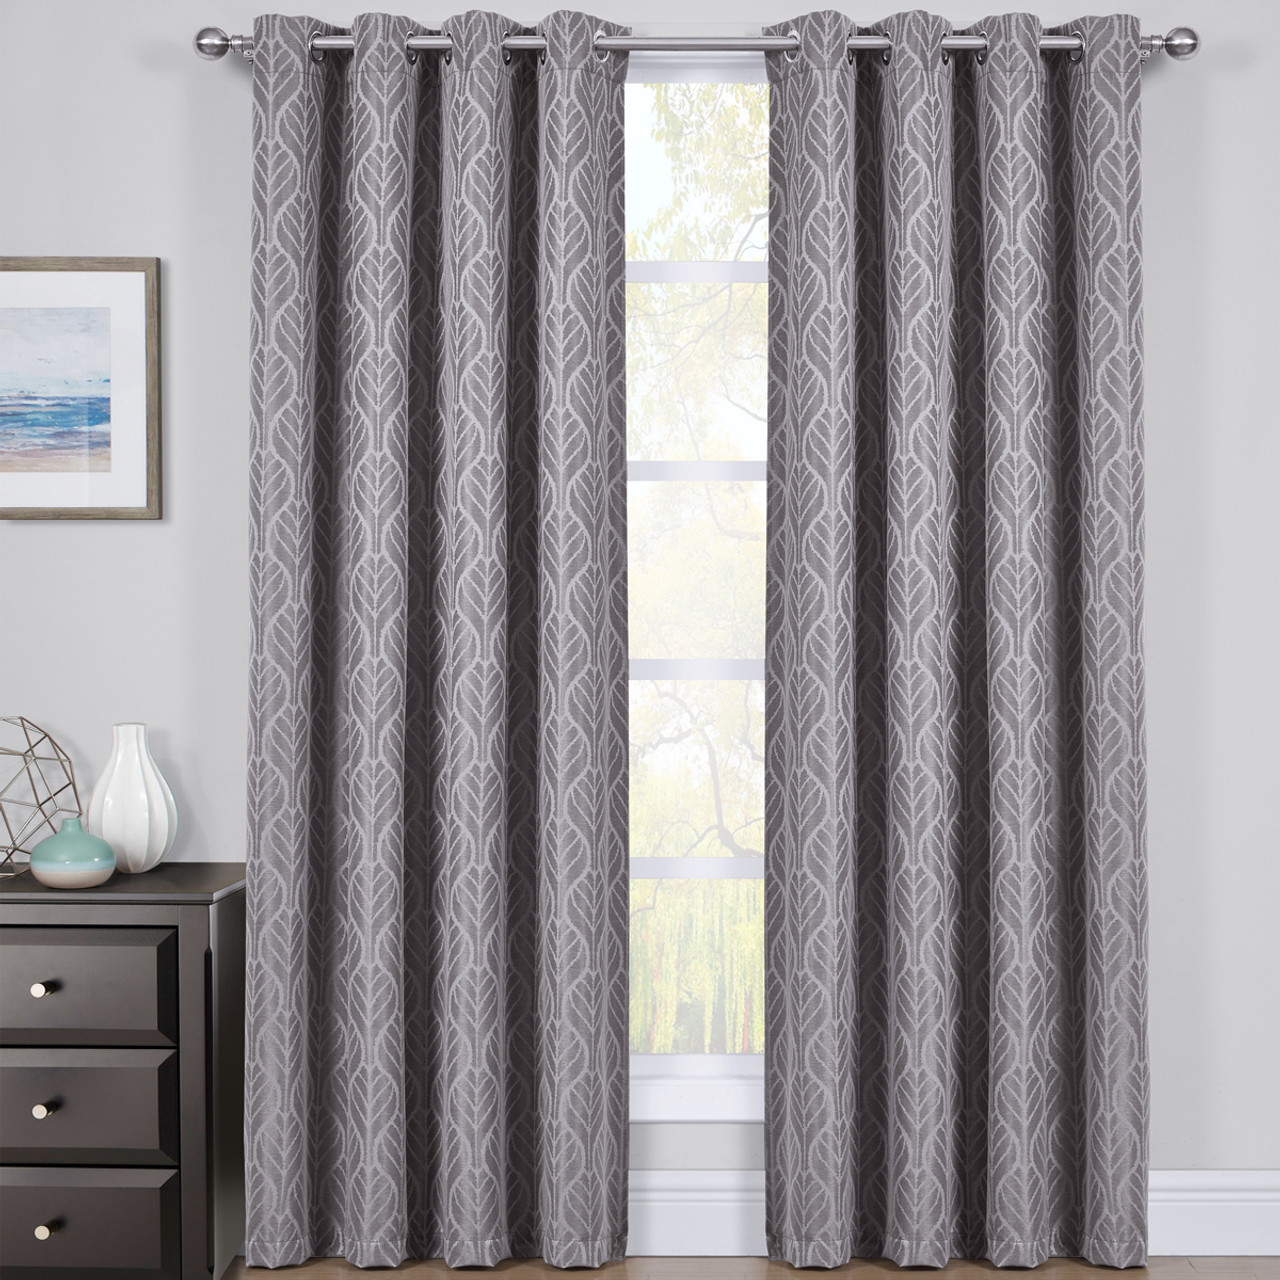 Gray Hilton Blackout Curtains Jacquard Thermal Insulated Pair